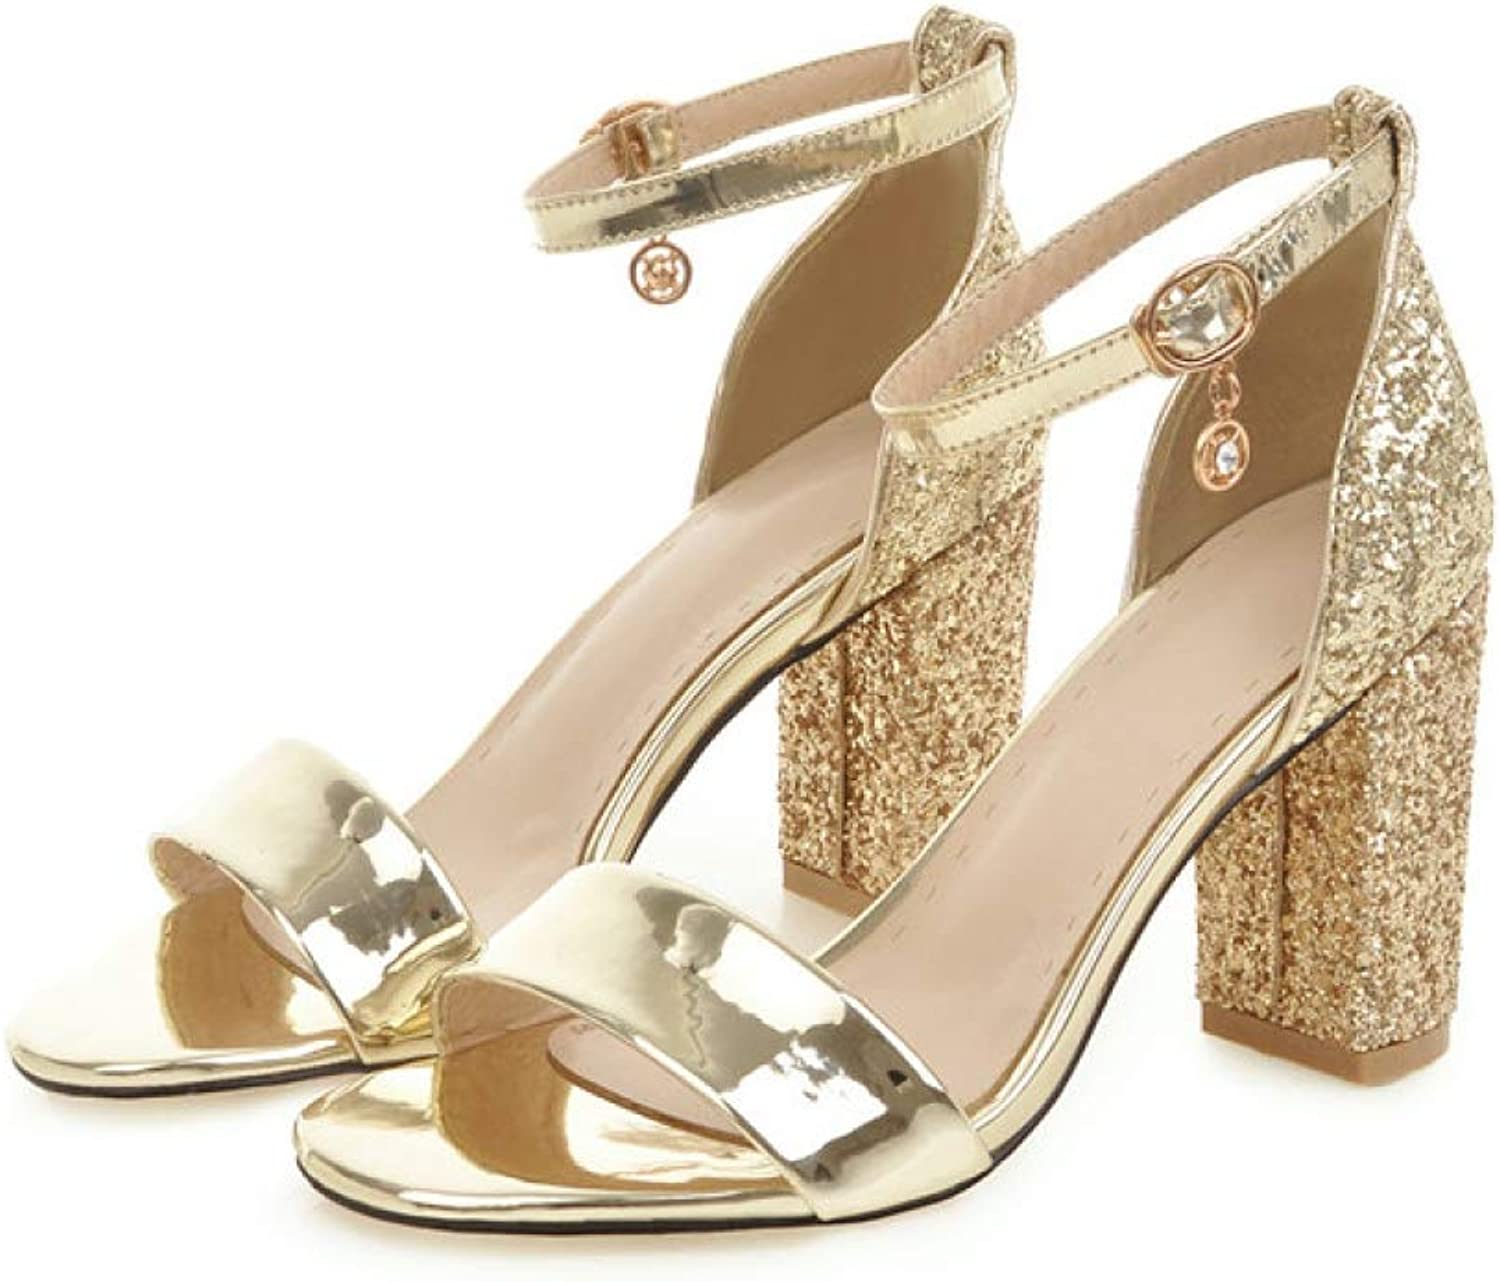 T-JULY Sandals for Women Summer Glitter Ankle Strap Square Heel Sexy High Heel Ladies shoes